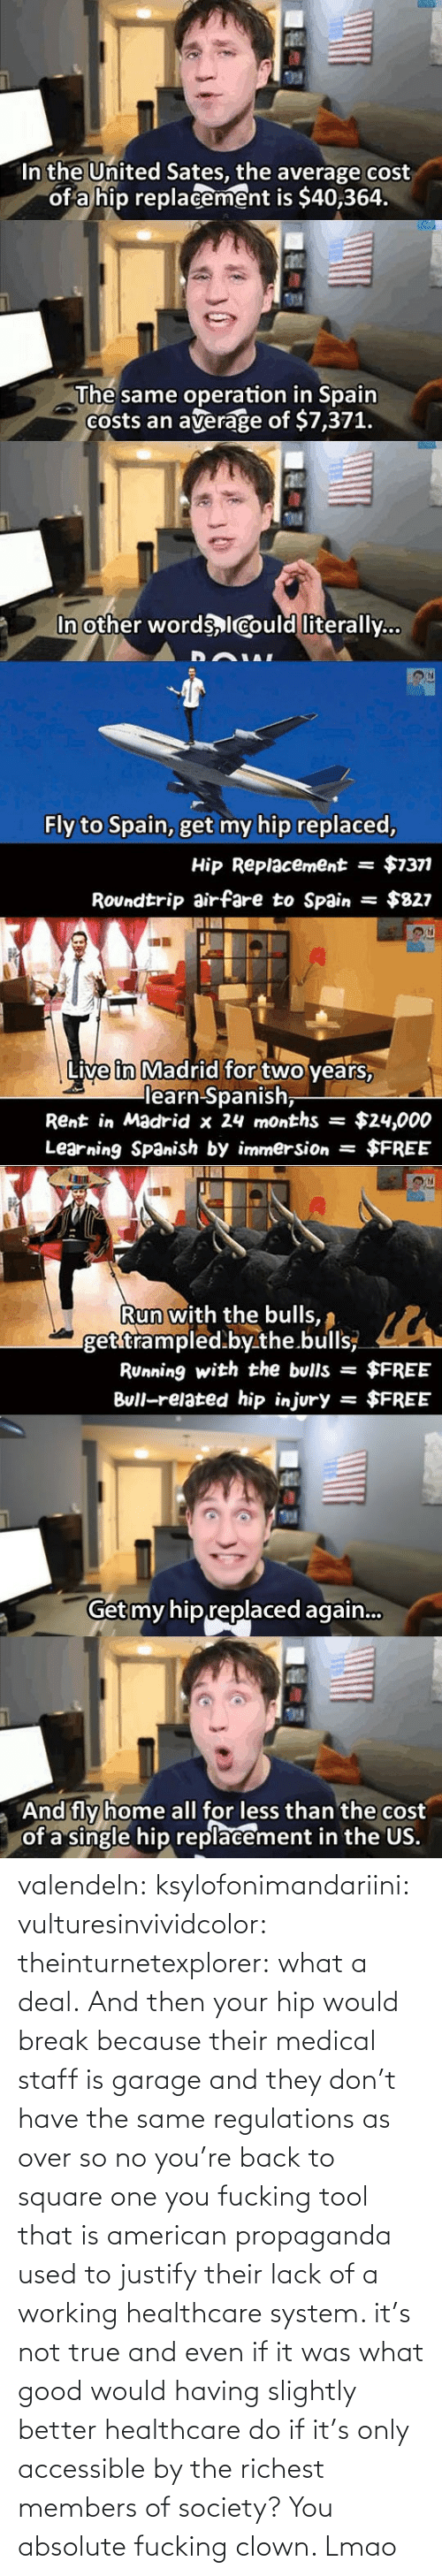 You Fucking: valendeln:  ksylofonimandariini:  vulturesinvividcolor:   theinturnetexplorer:  what a deal.   And then your hip would break because their medical staff is garage and they don't have the same regulations as over so no you're back to square one you fucking tool    that is american propaganda used to justify their lack of a working healthcare system. it's not true and even if it was what good would having slightly better healthcare do if it's only accessible by the richest members of society?      You absolute fucking clown. Lmao